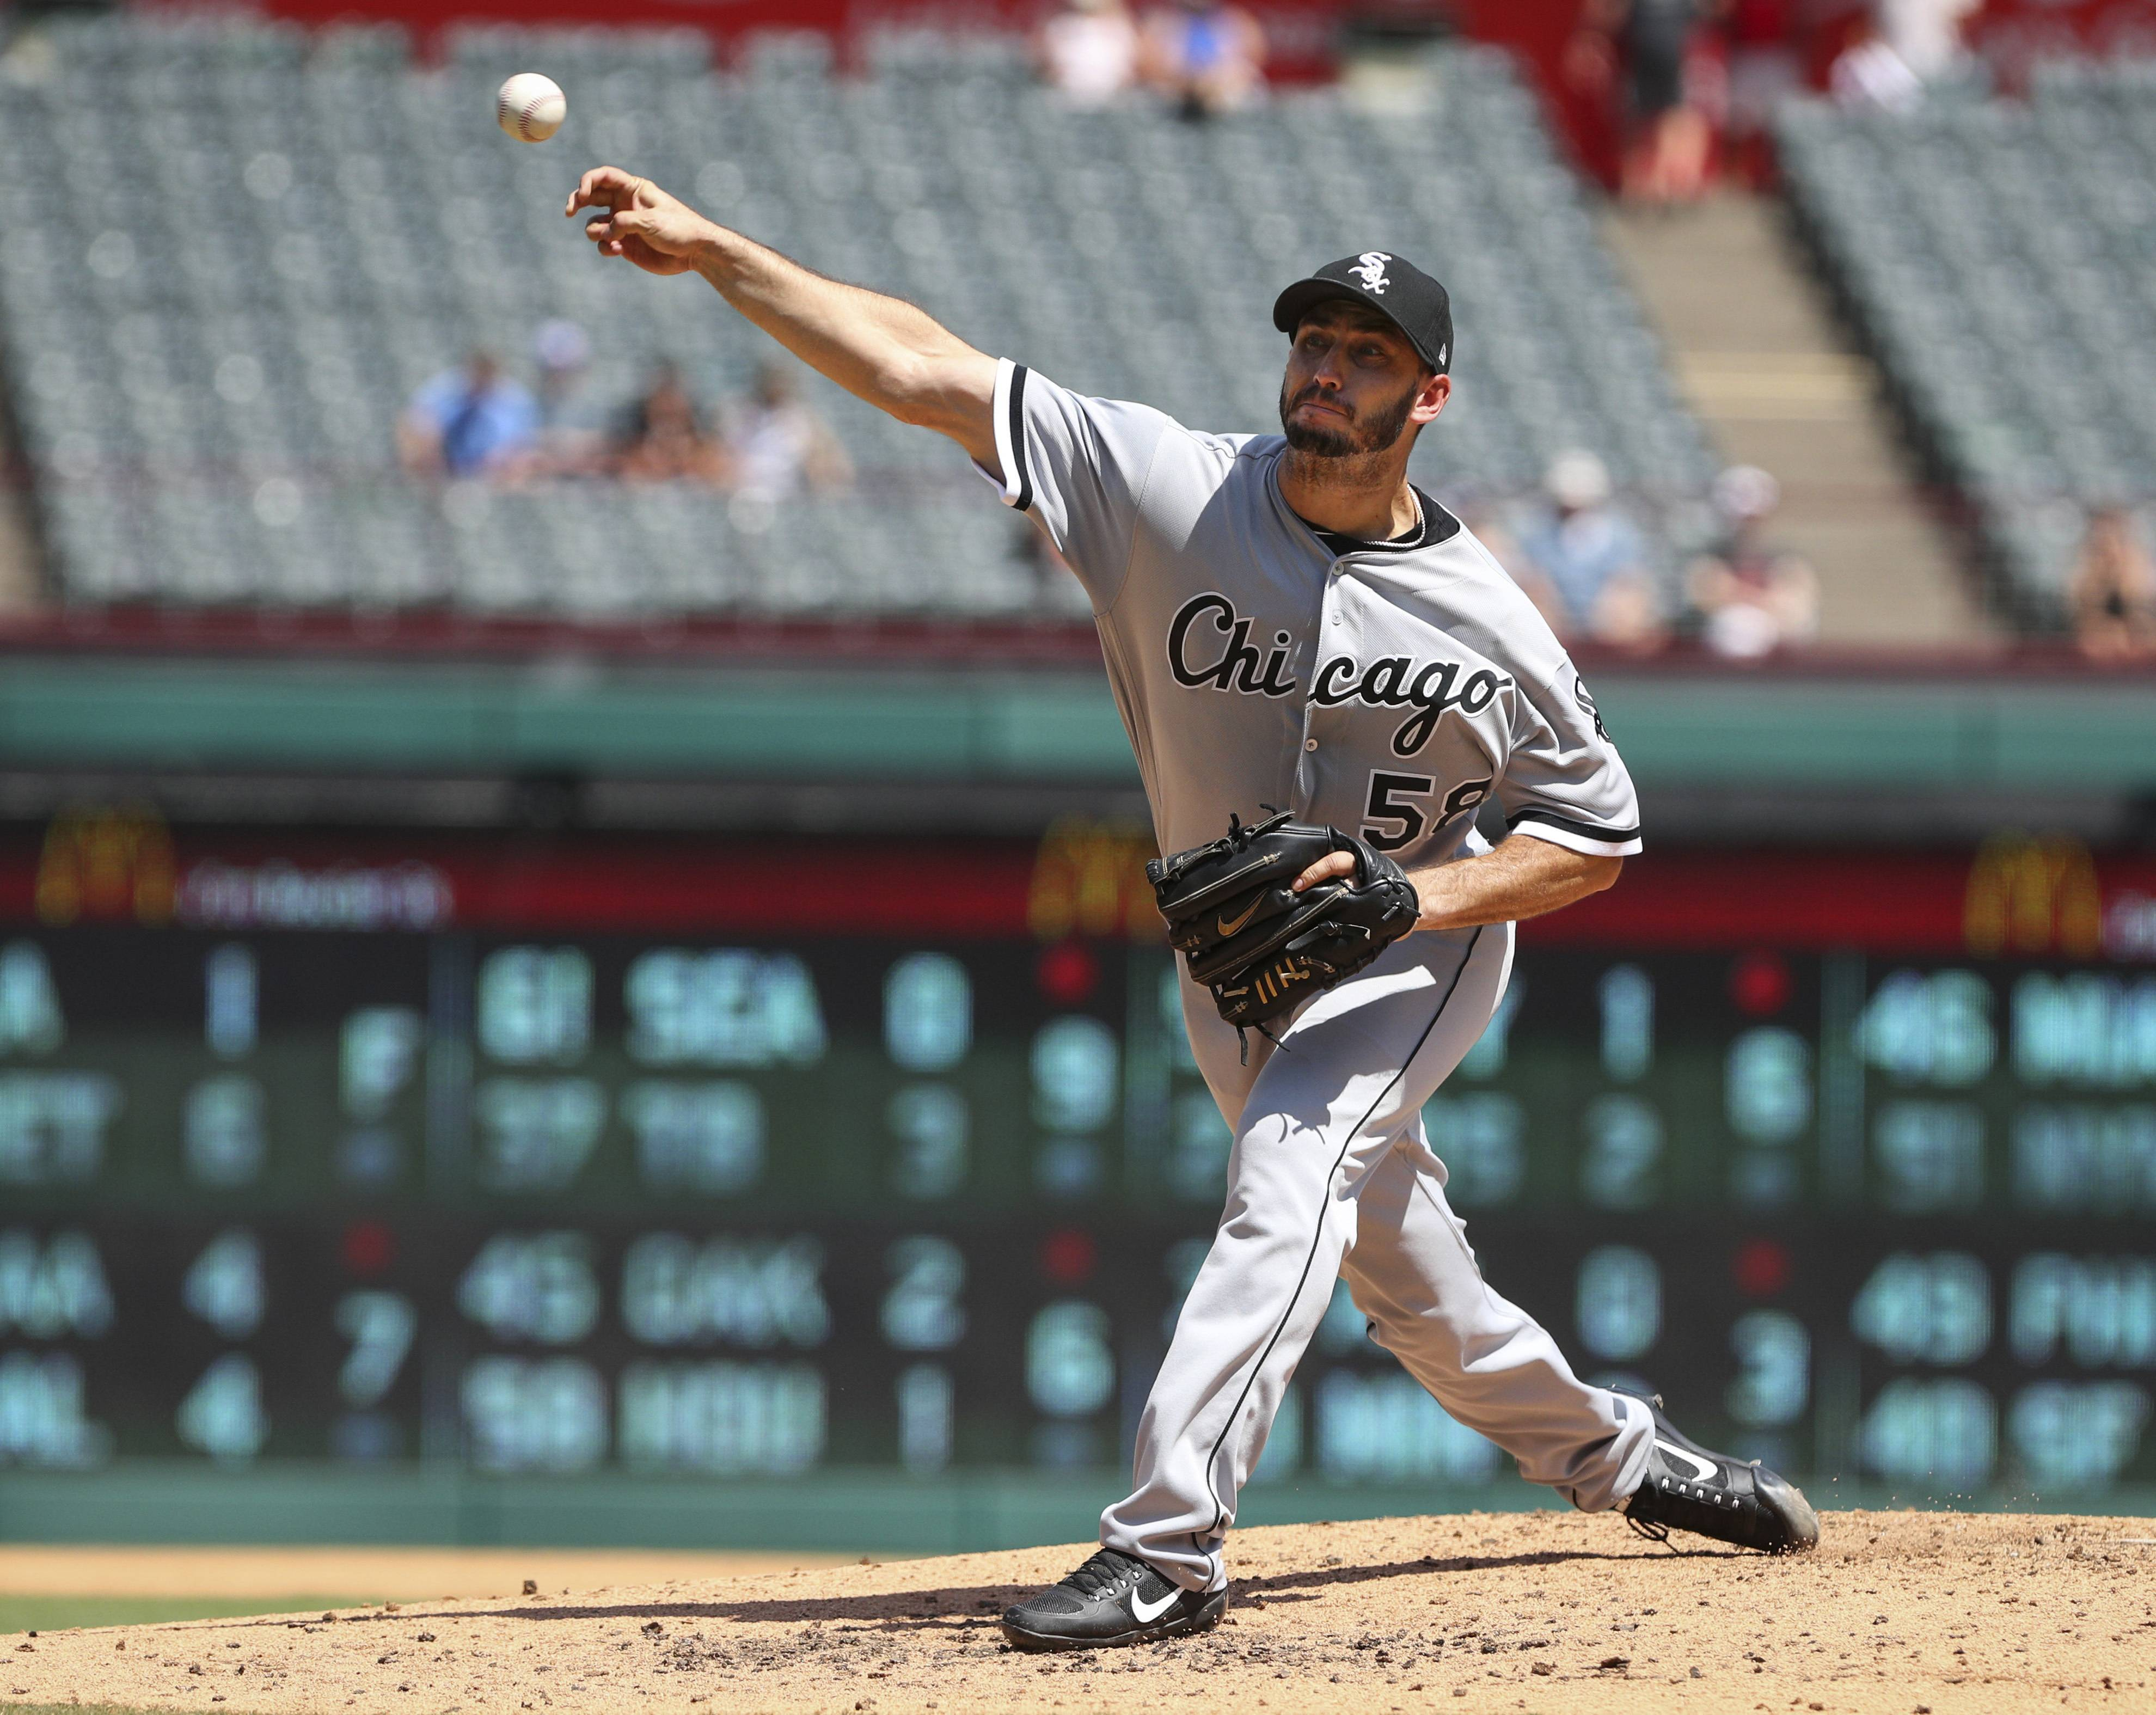 Chicago White Sox starting pitcher Miguel Gonzalez (58) delivers a pitch in the second inning against the Texas Rangers at Globe Life Park in Arlington, Texas, Sunday, Aug. 20, 2017.